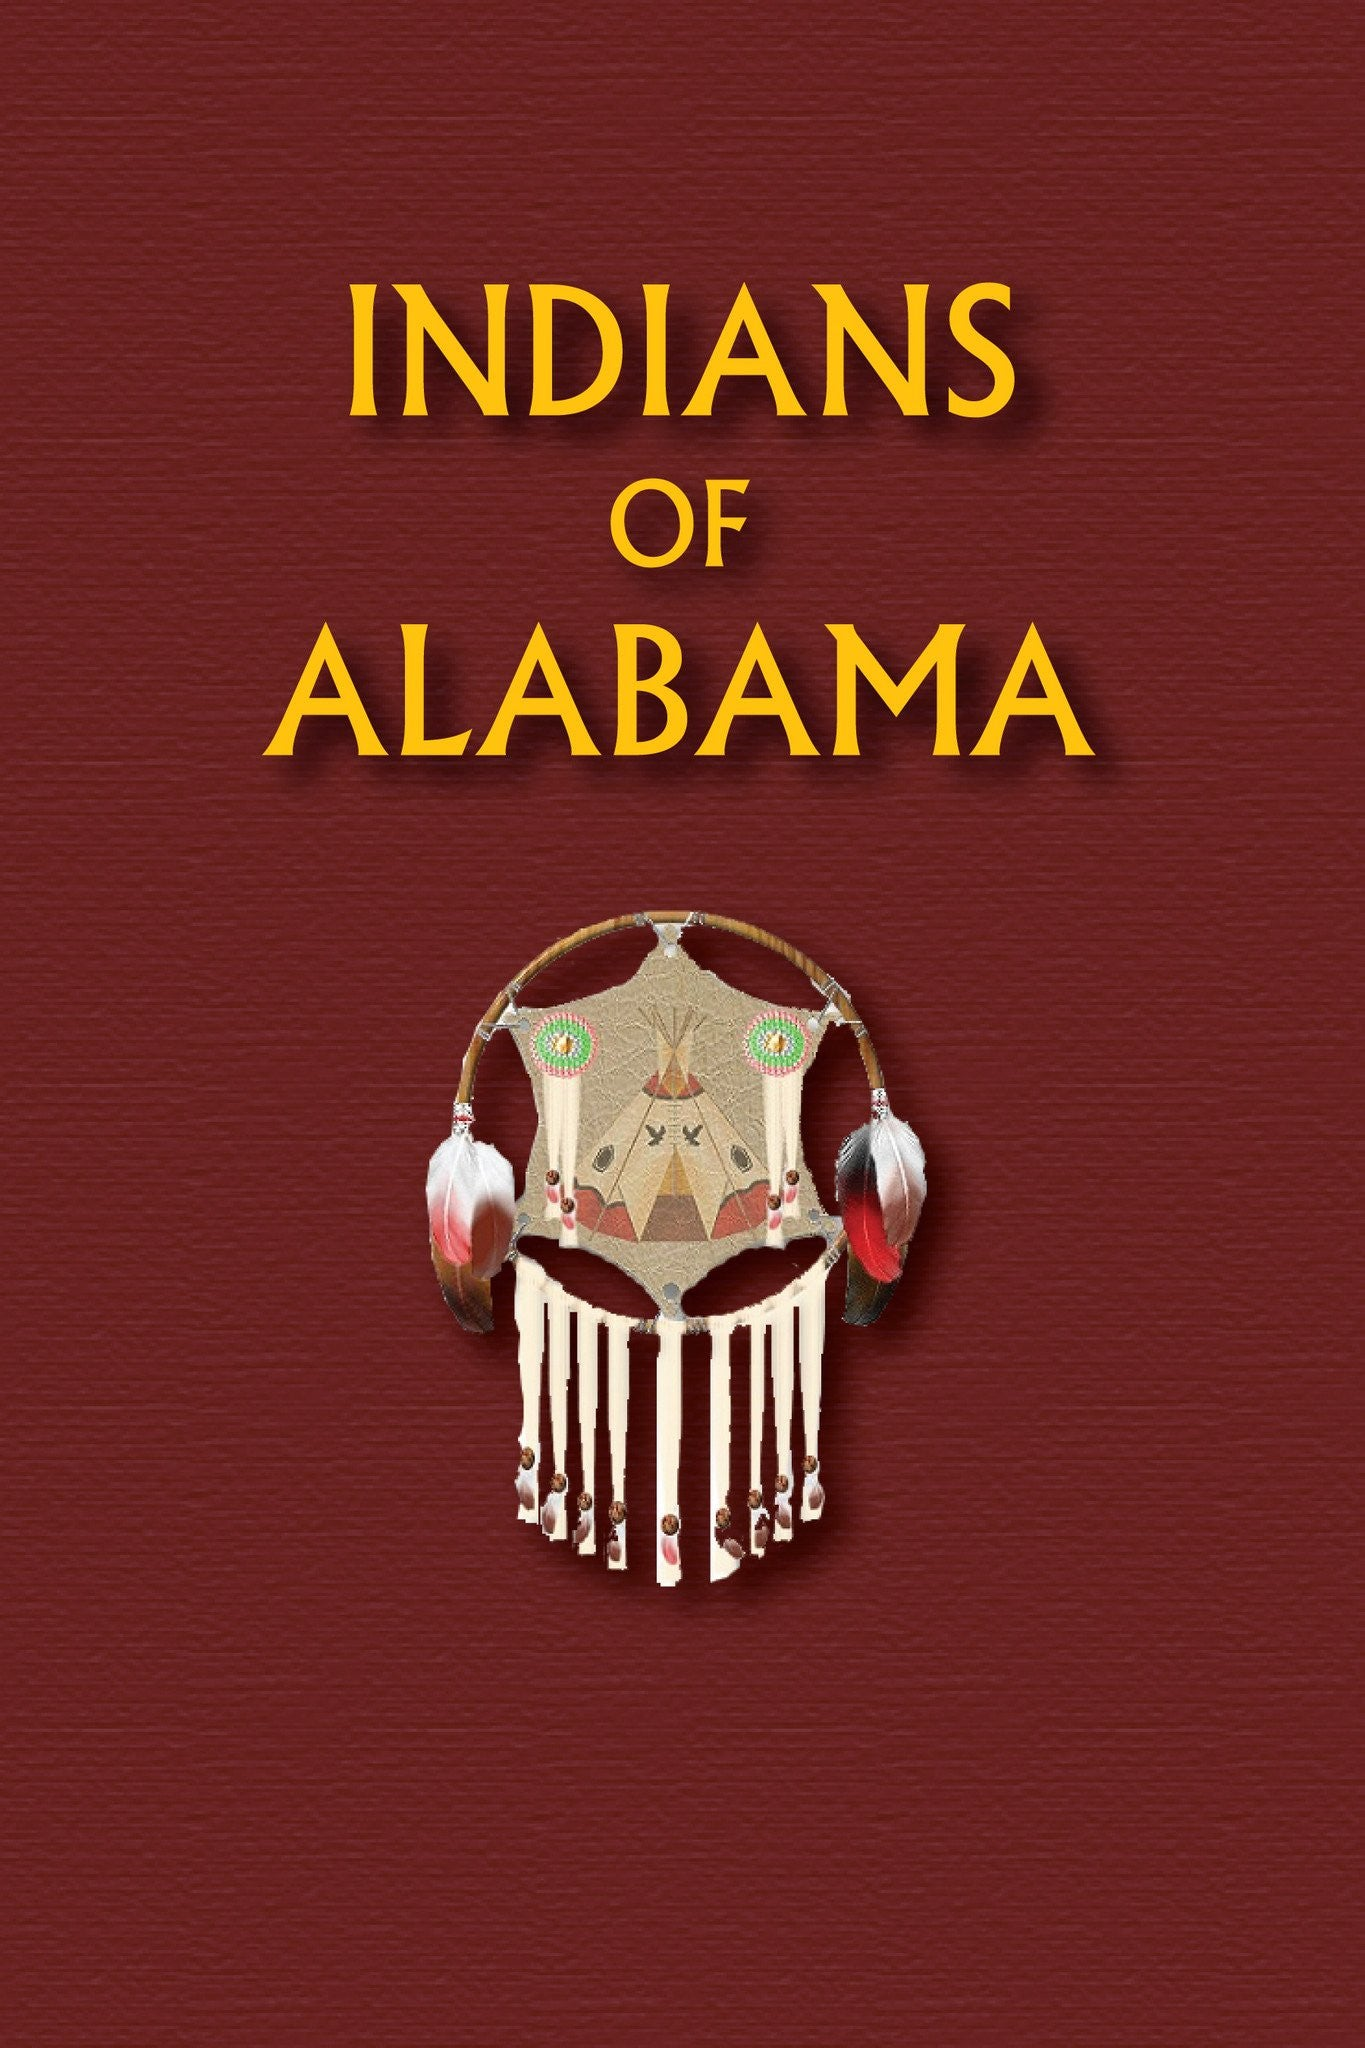 Indians of Alabama